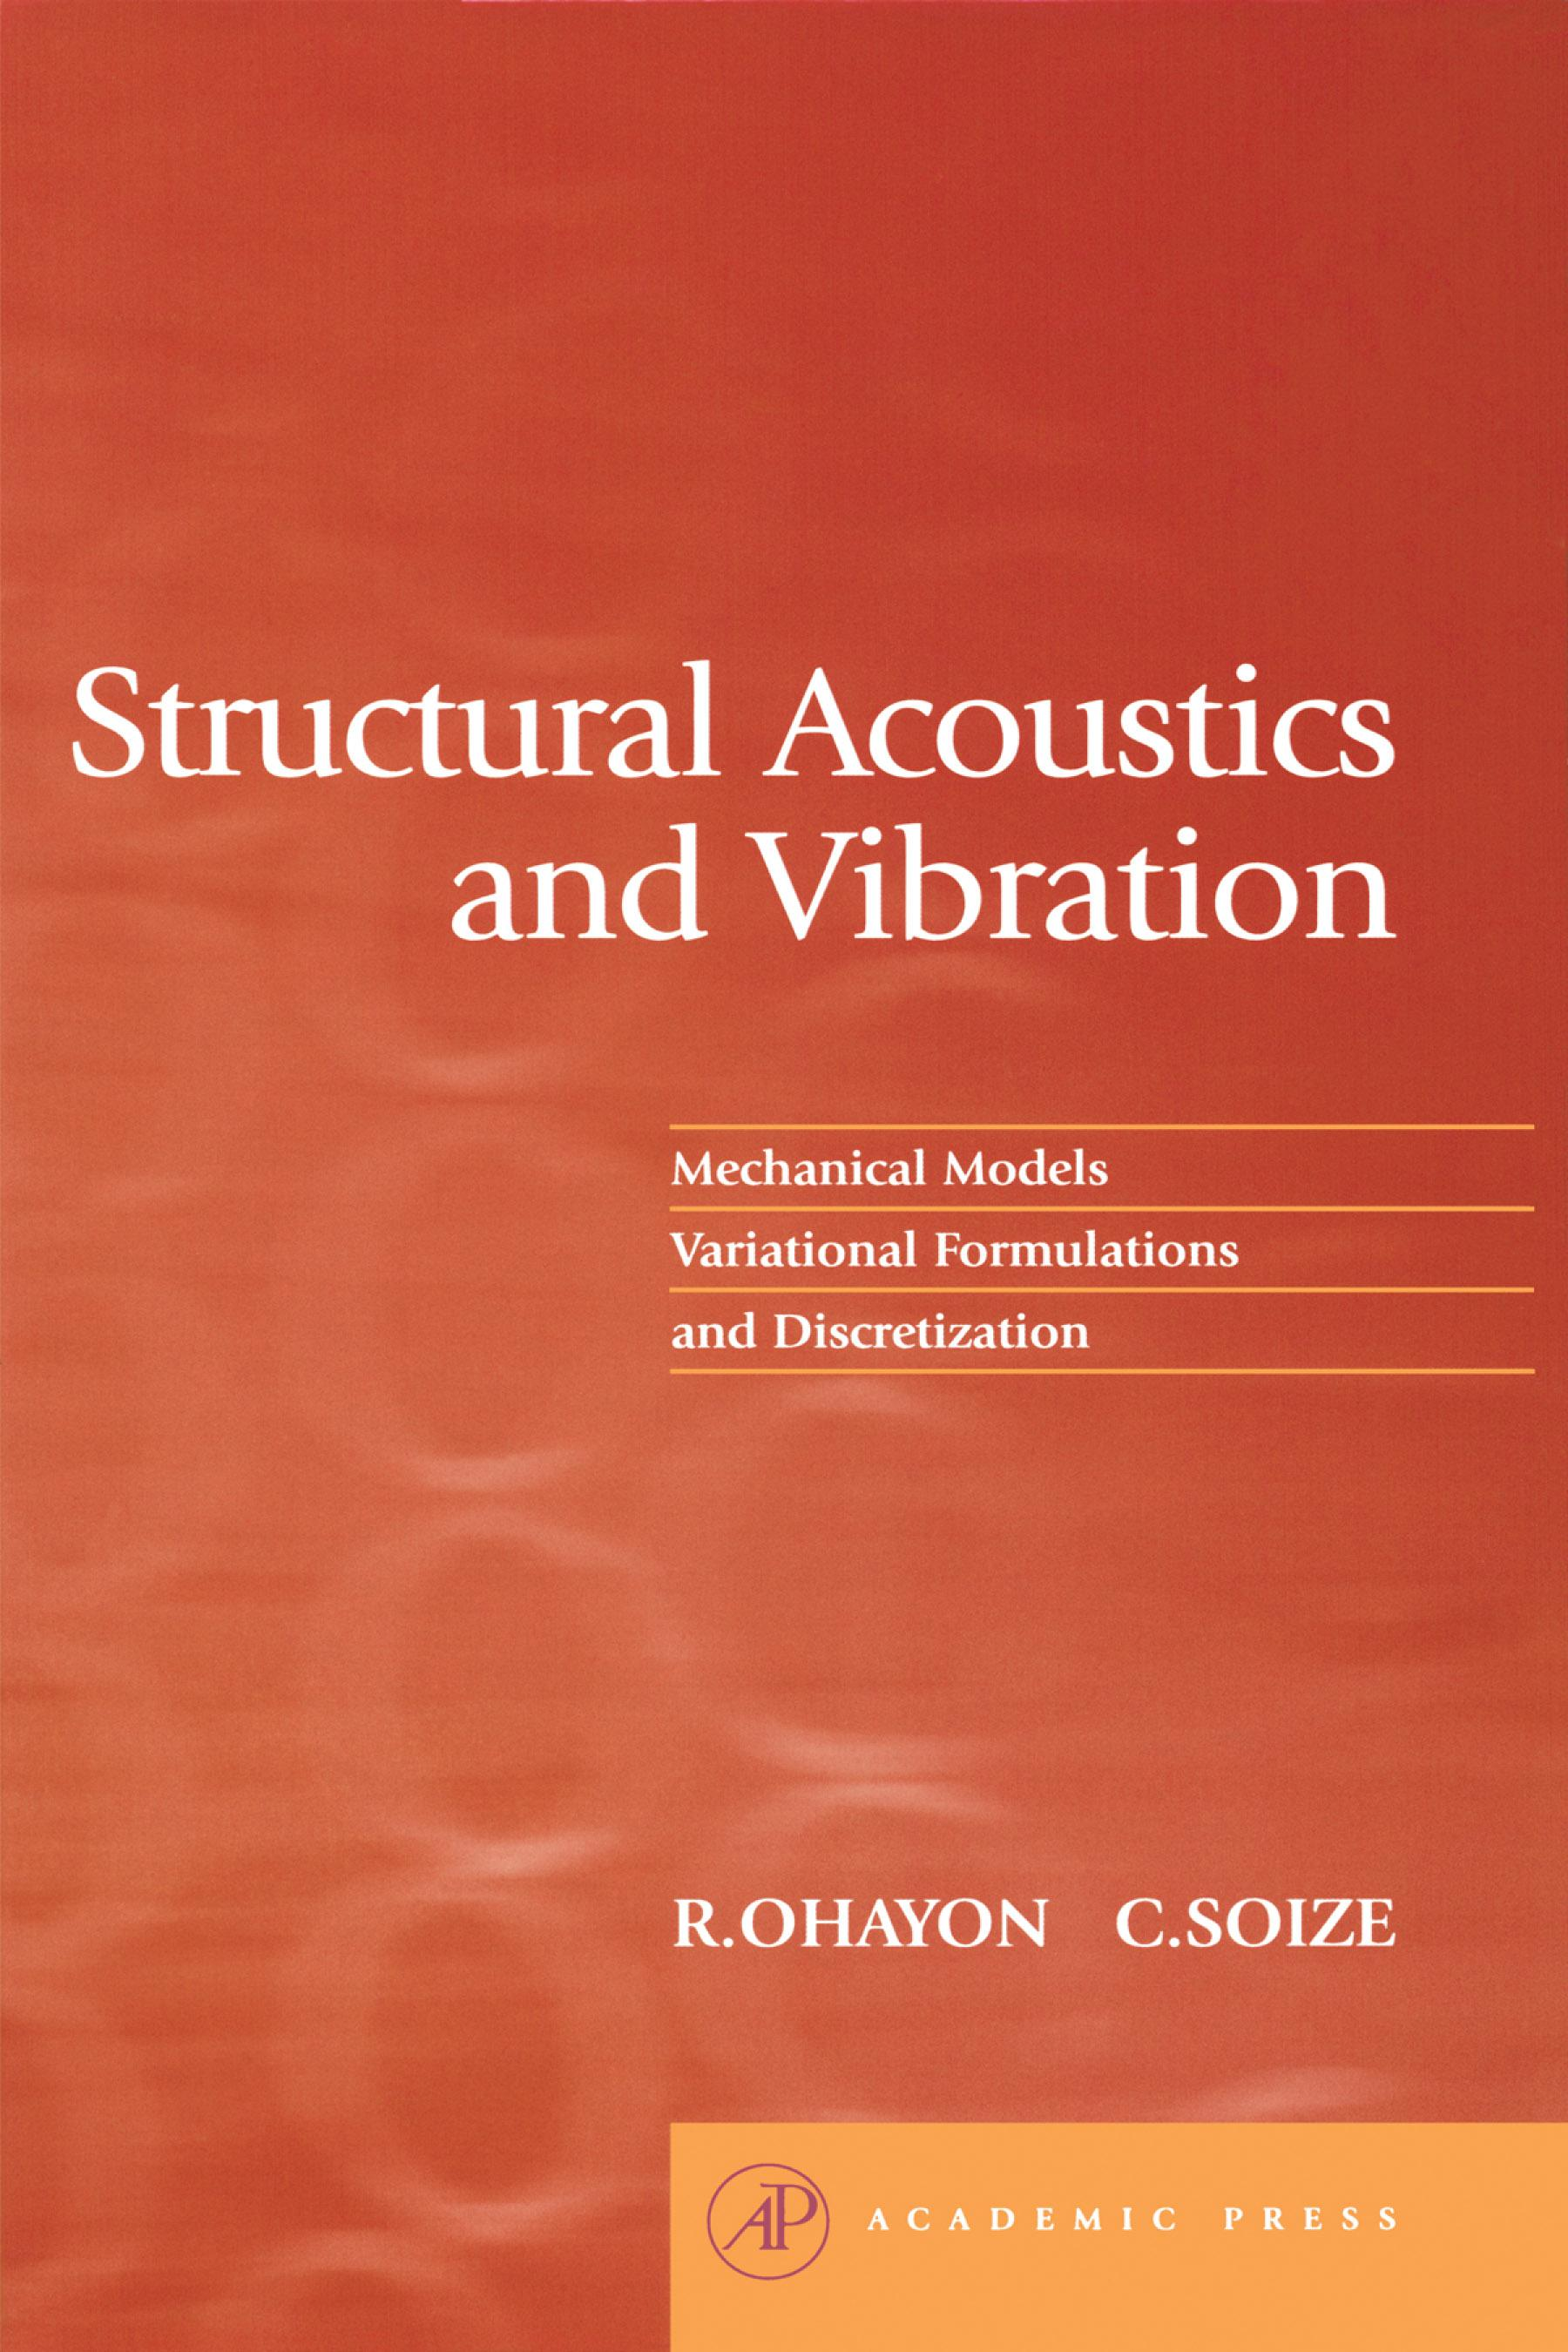 Structural Acoustics and Vibration: Mechanical Models, Variational Formulations and Discretization EB9780080541945